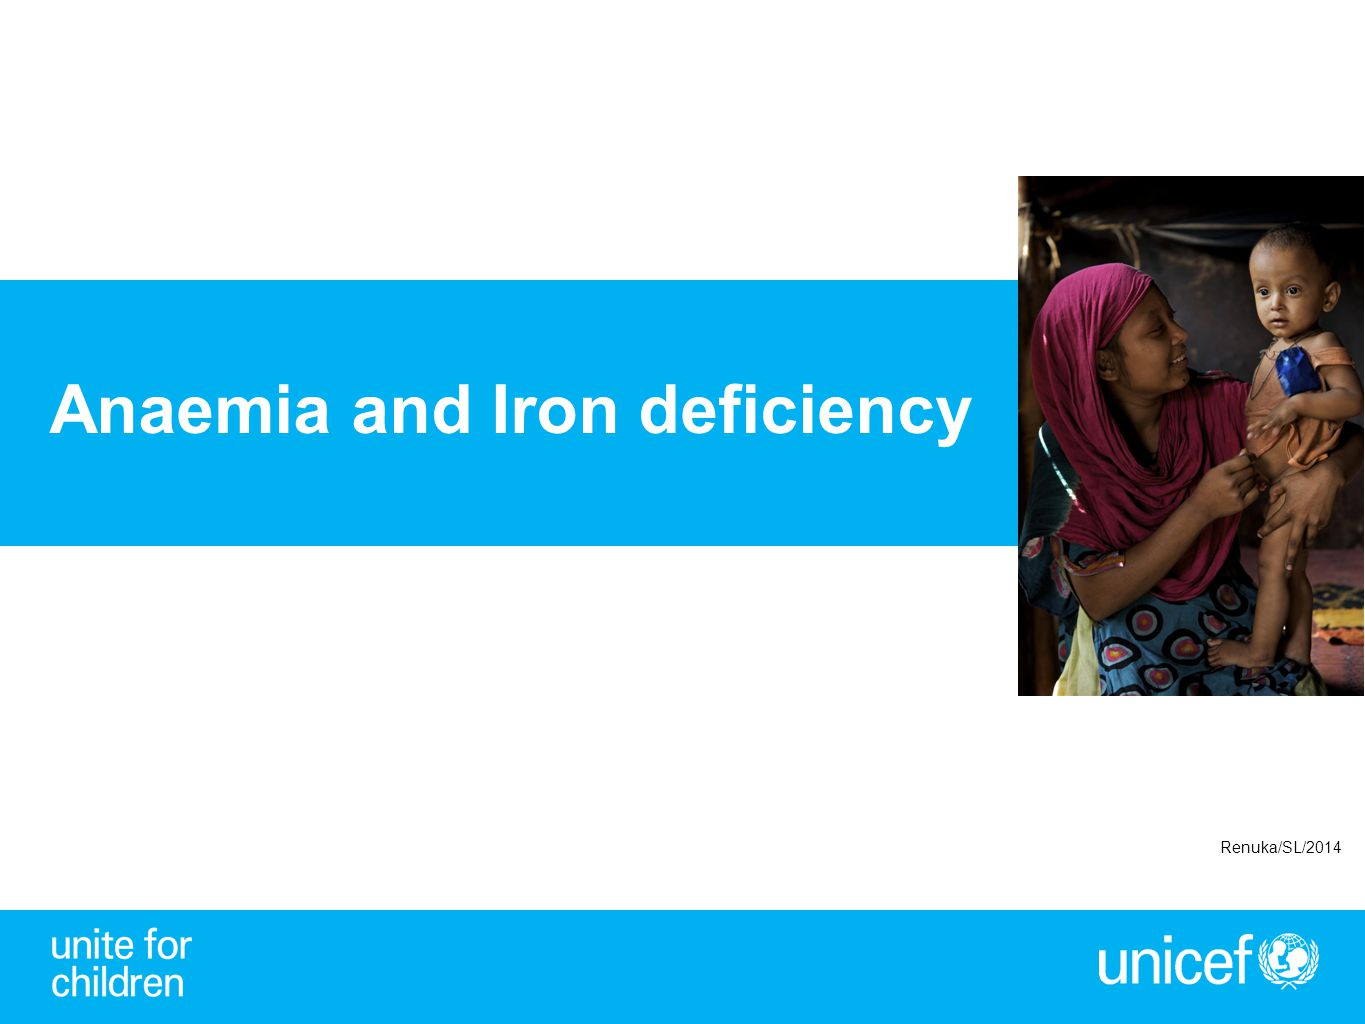 Anaemia and Iron deficiency